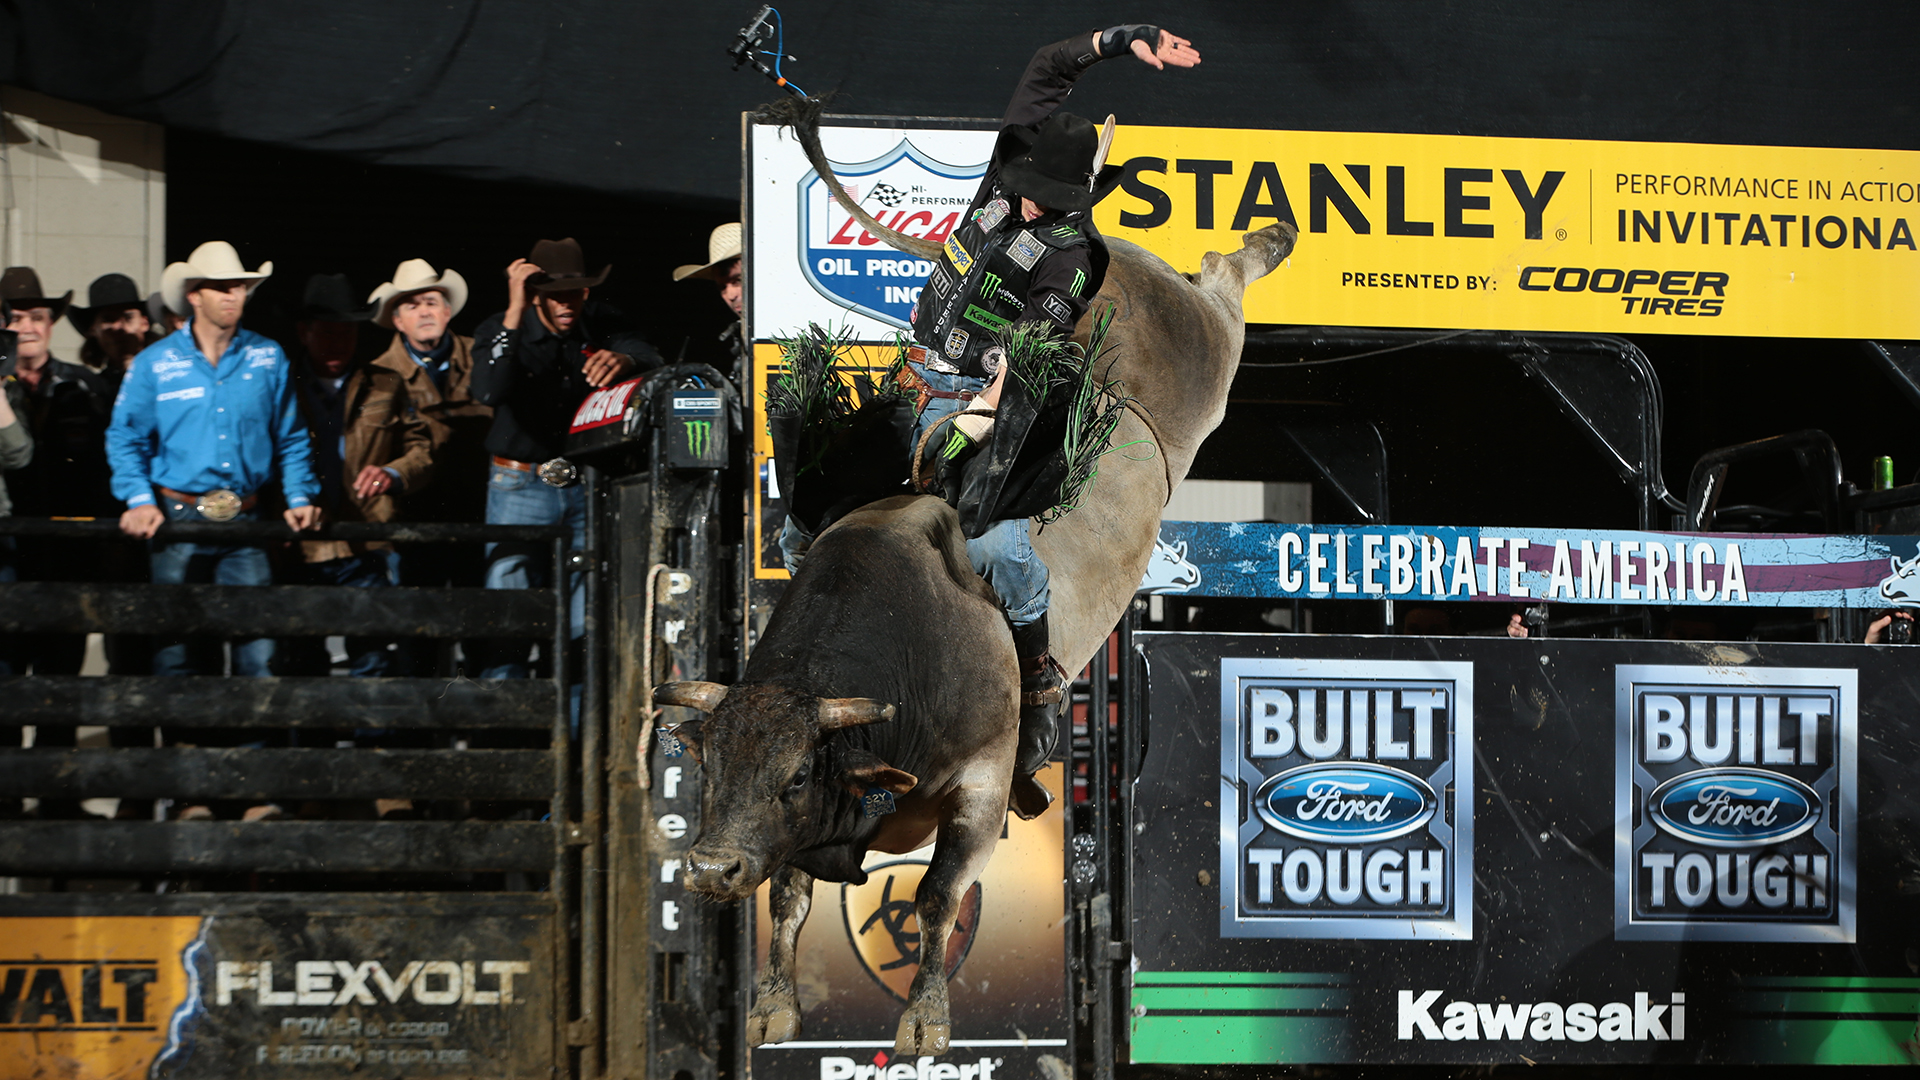 Looking back at J.B. Mauney's impressive feat of riding every World Champion Bull since 2007